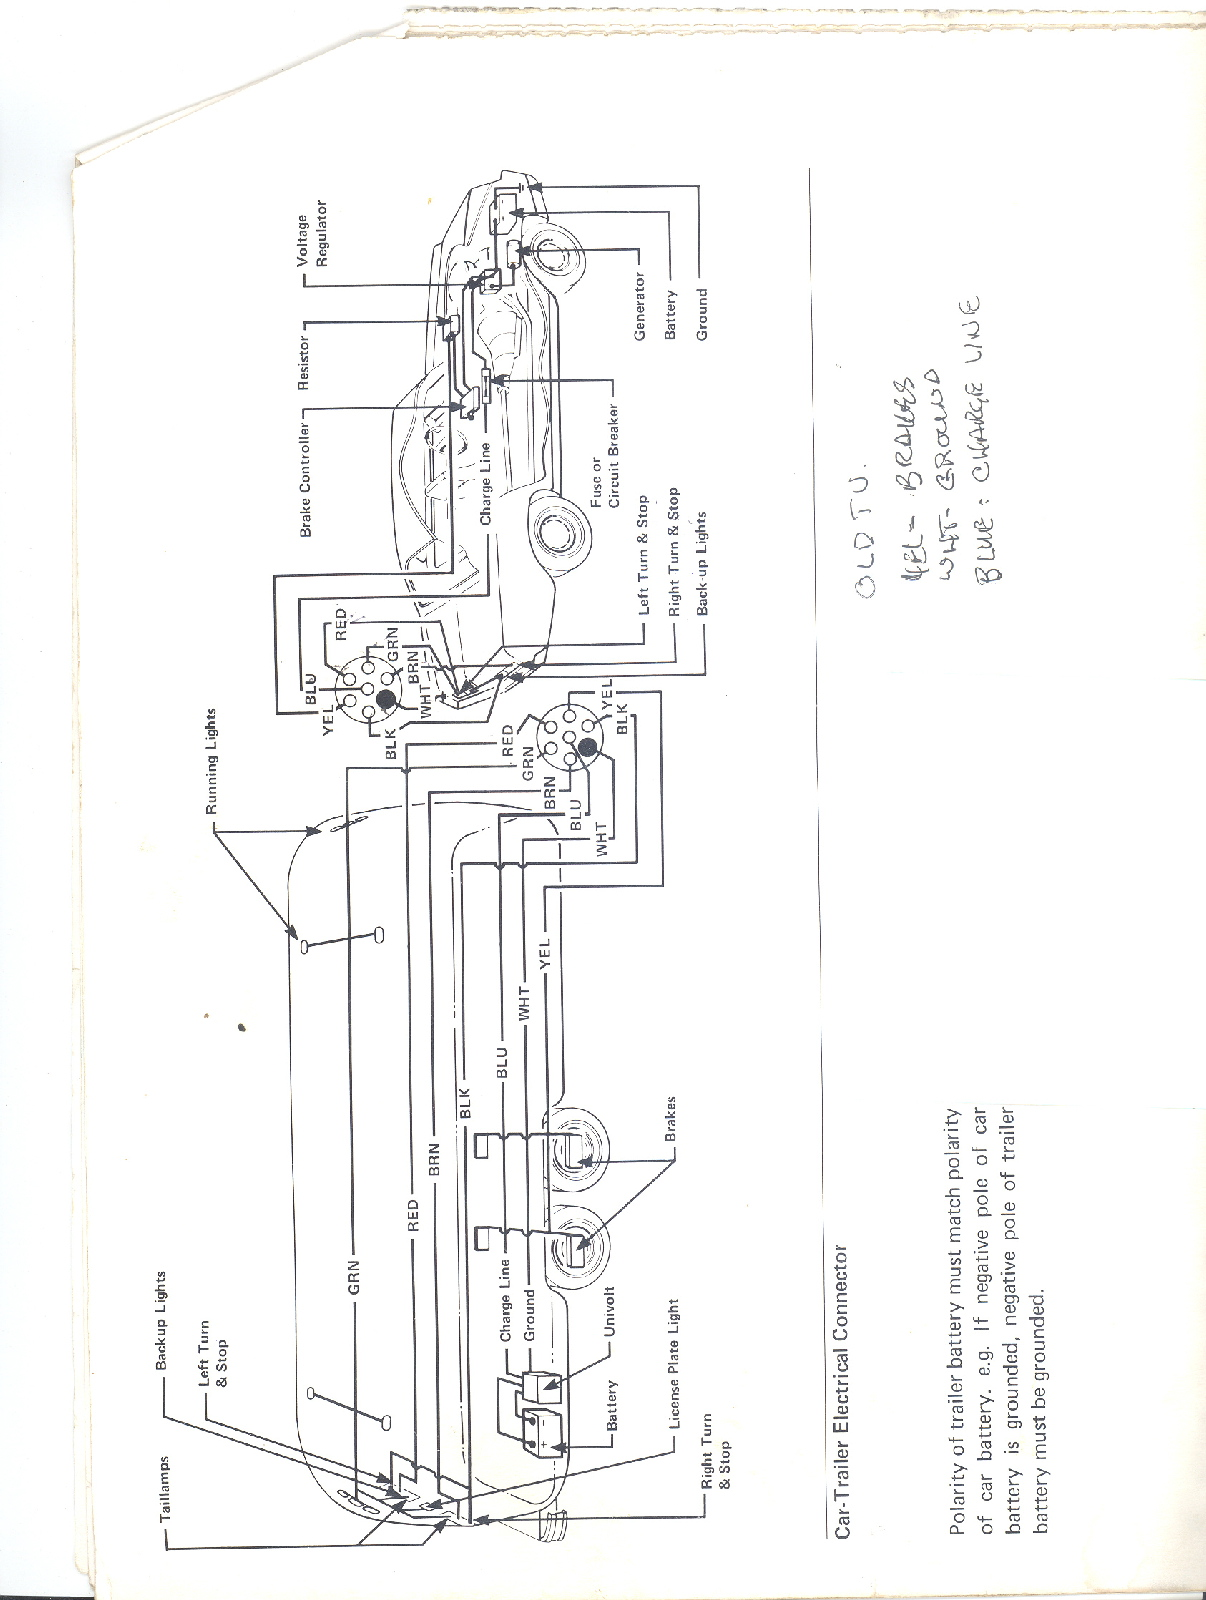 Click image for larger version  Name:Argosy Wiring.jpg Views:266 Size:421.5 KB ID:121138